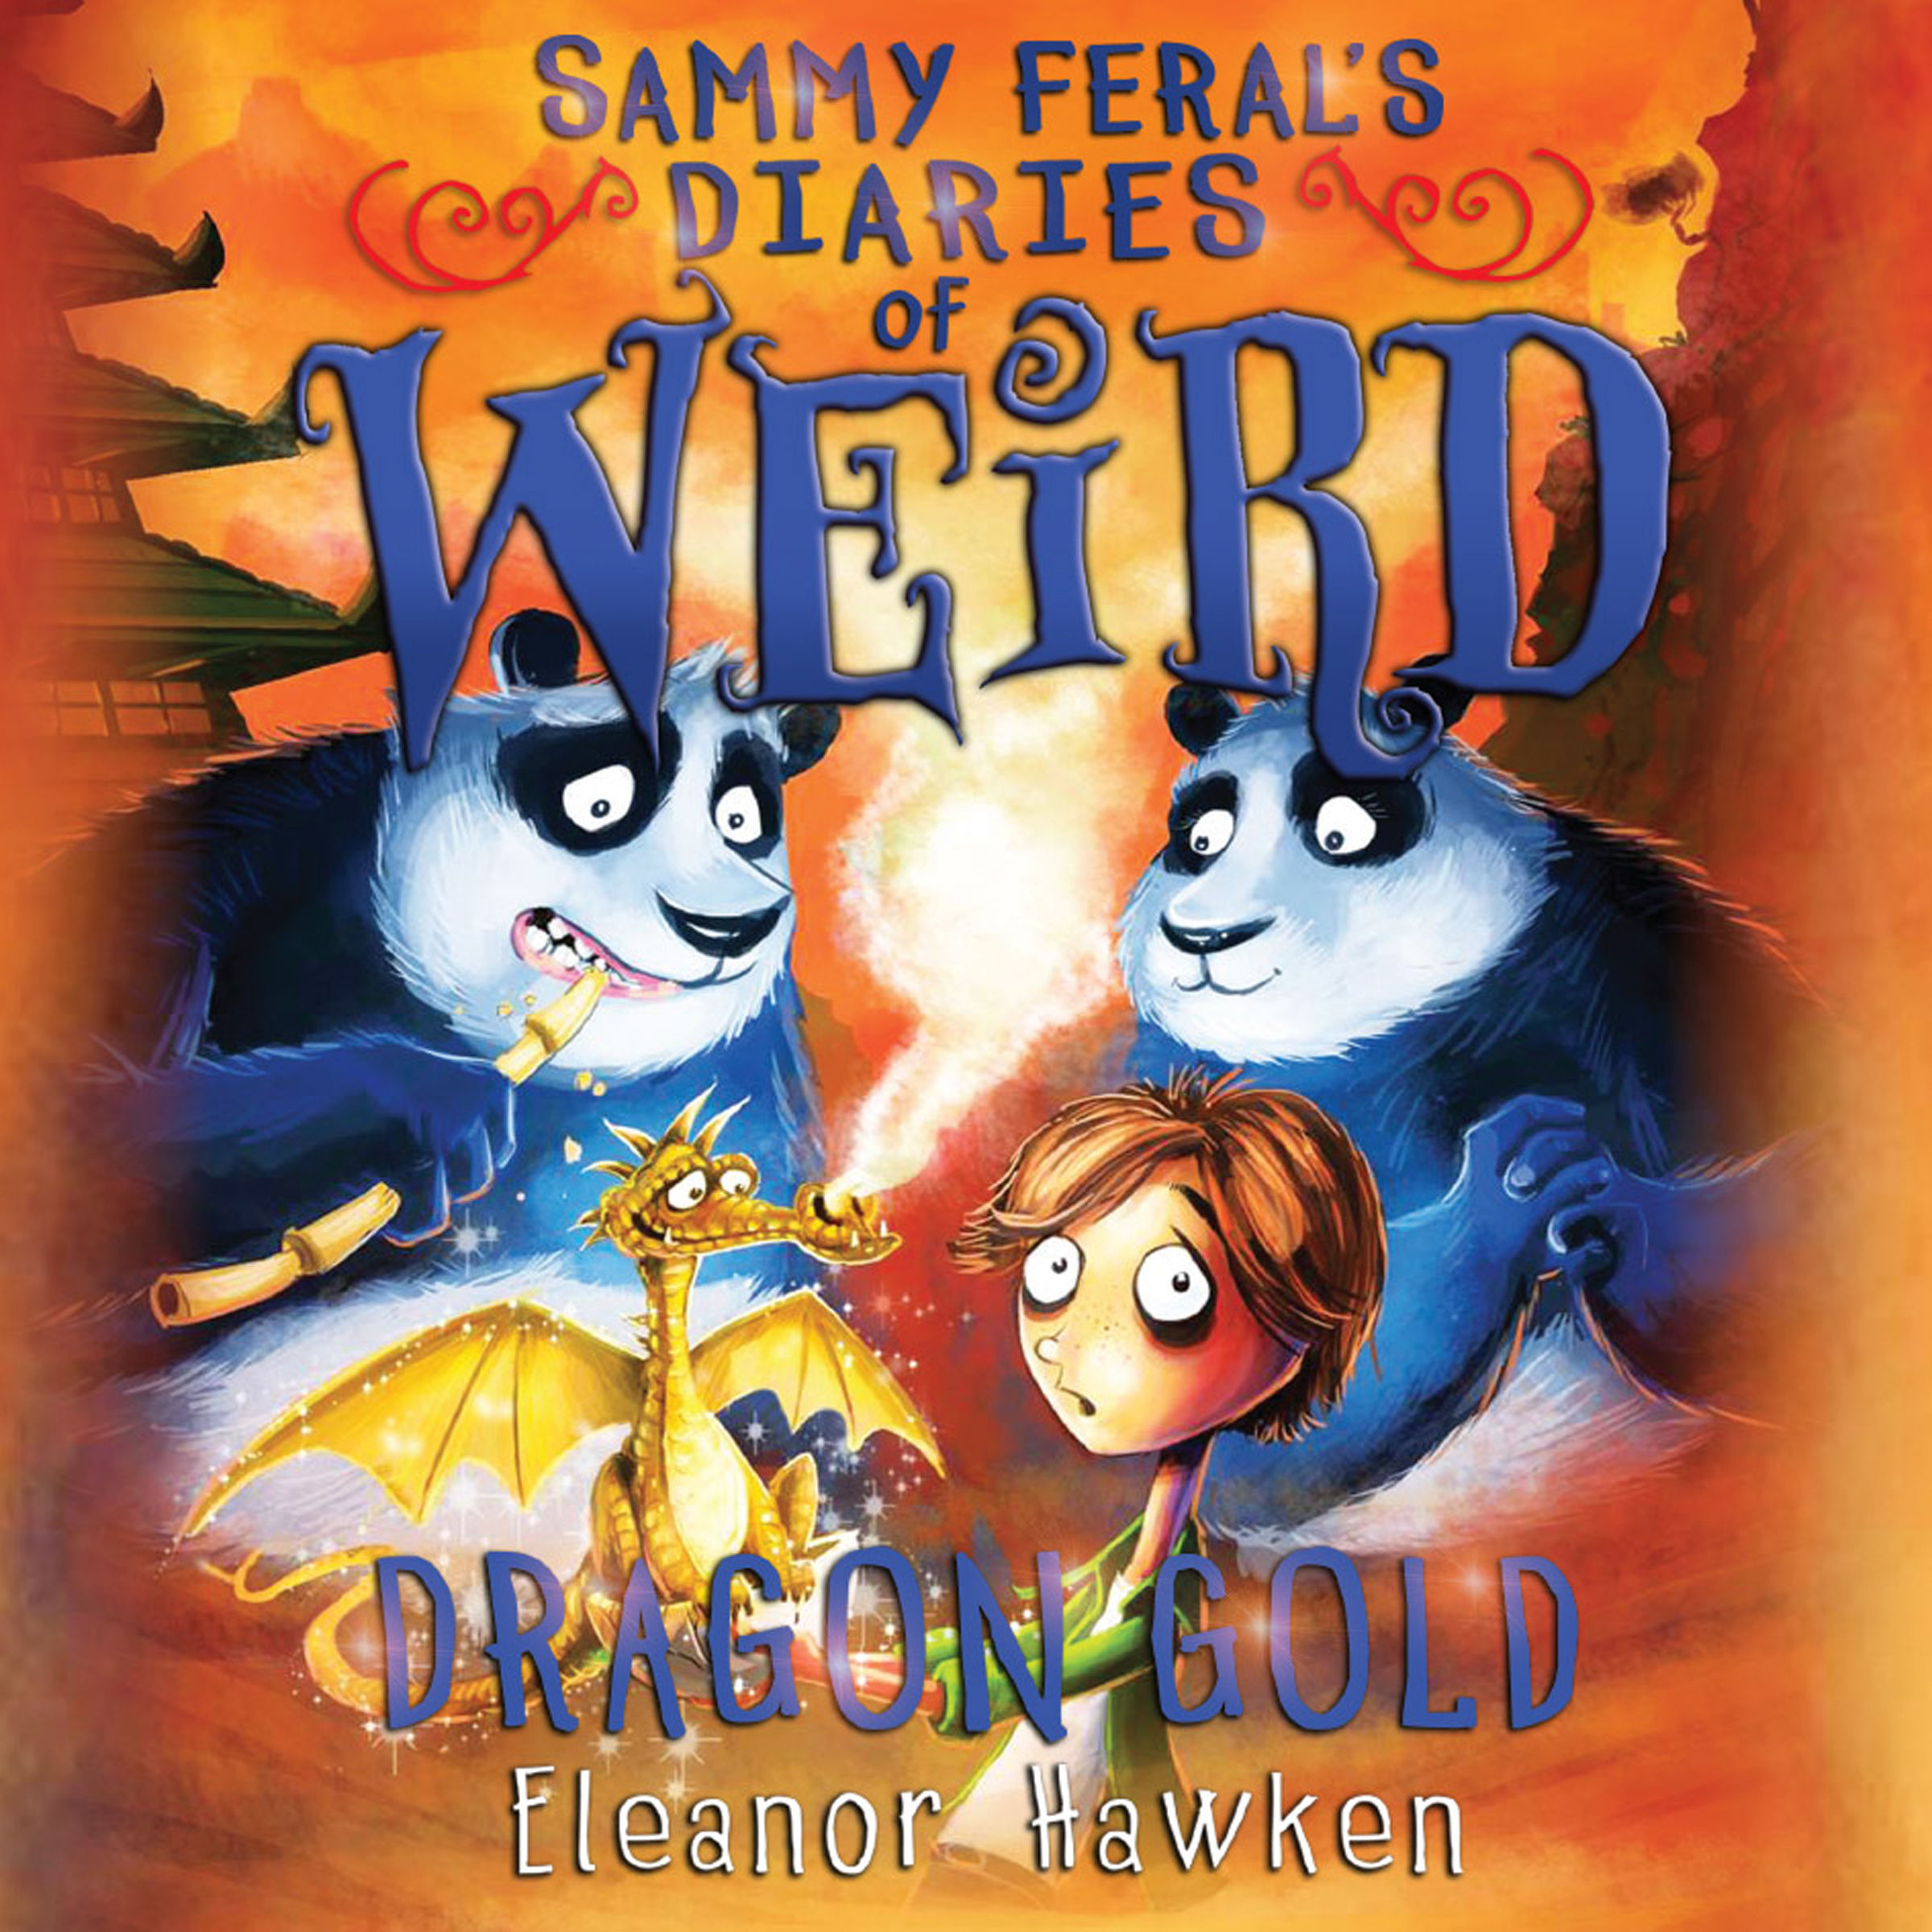 Printable Sammy Feral's Diaries of Weird: Dragon Gold Audiobook Cover Art